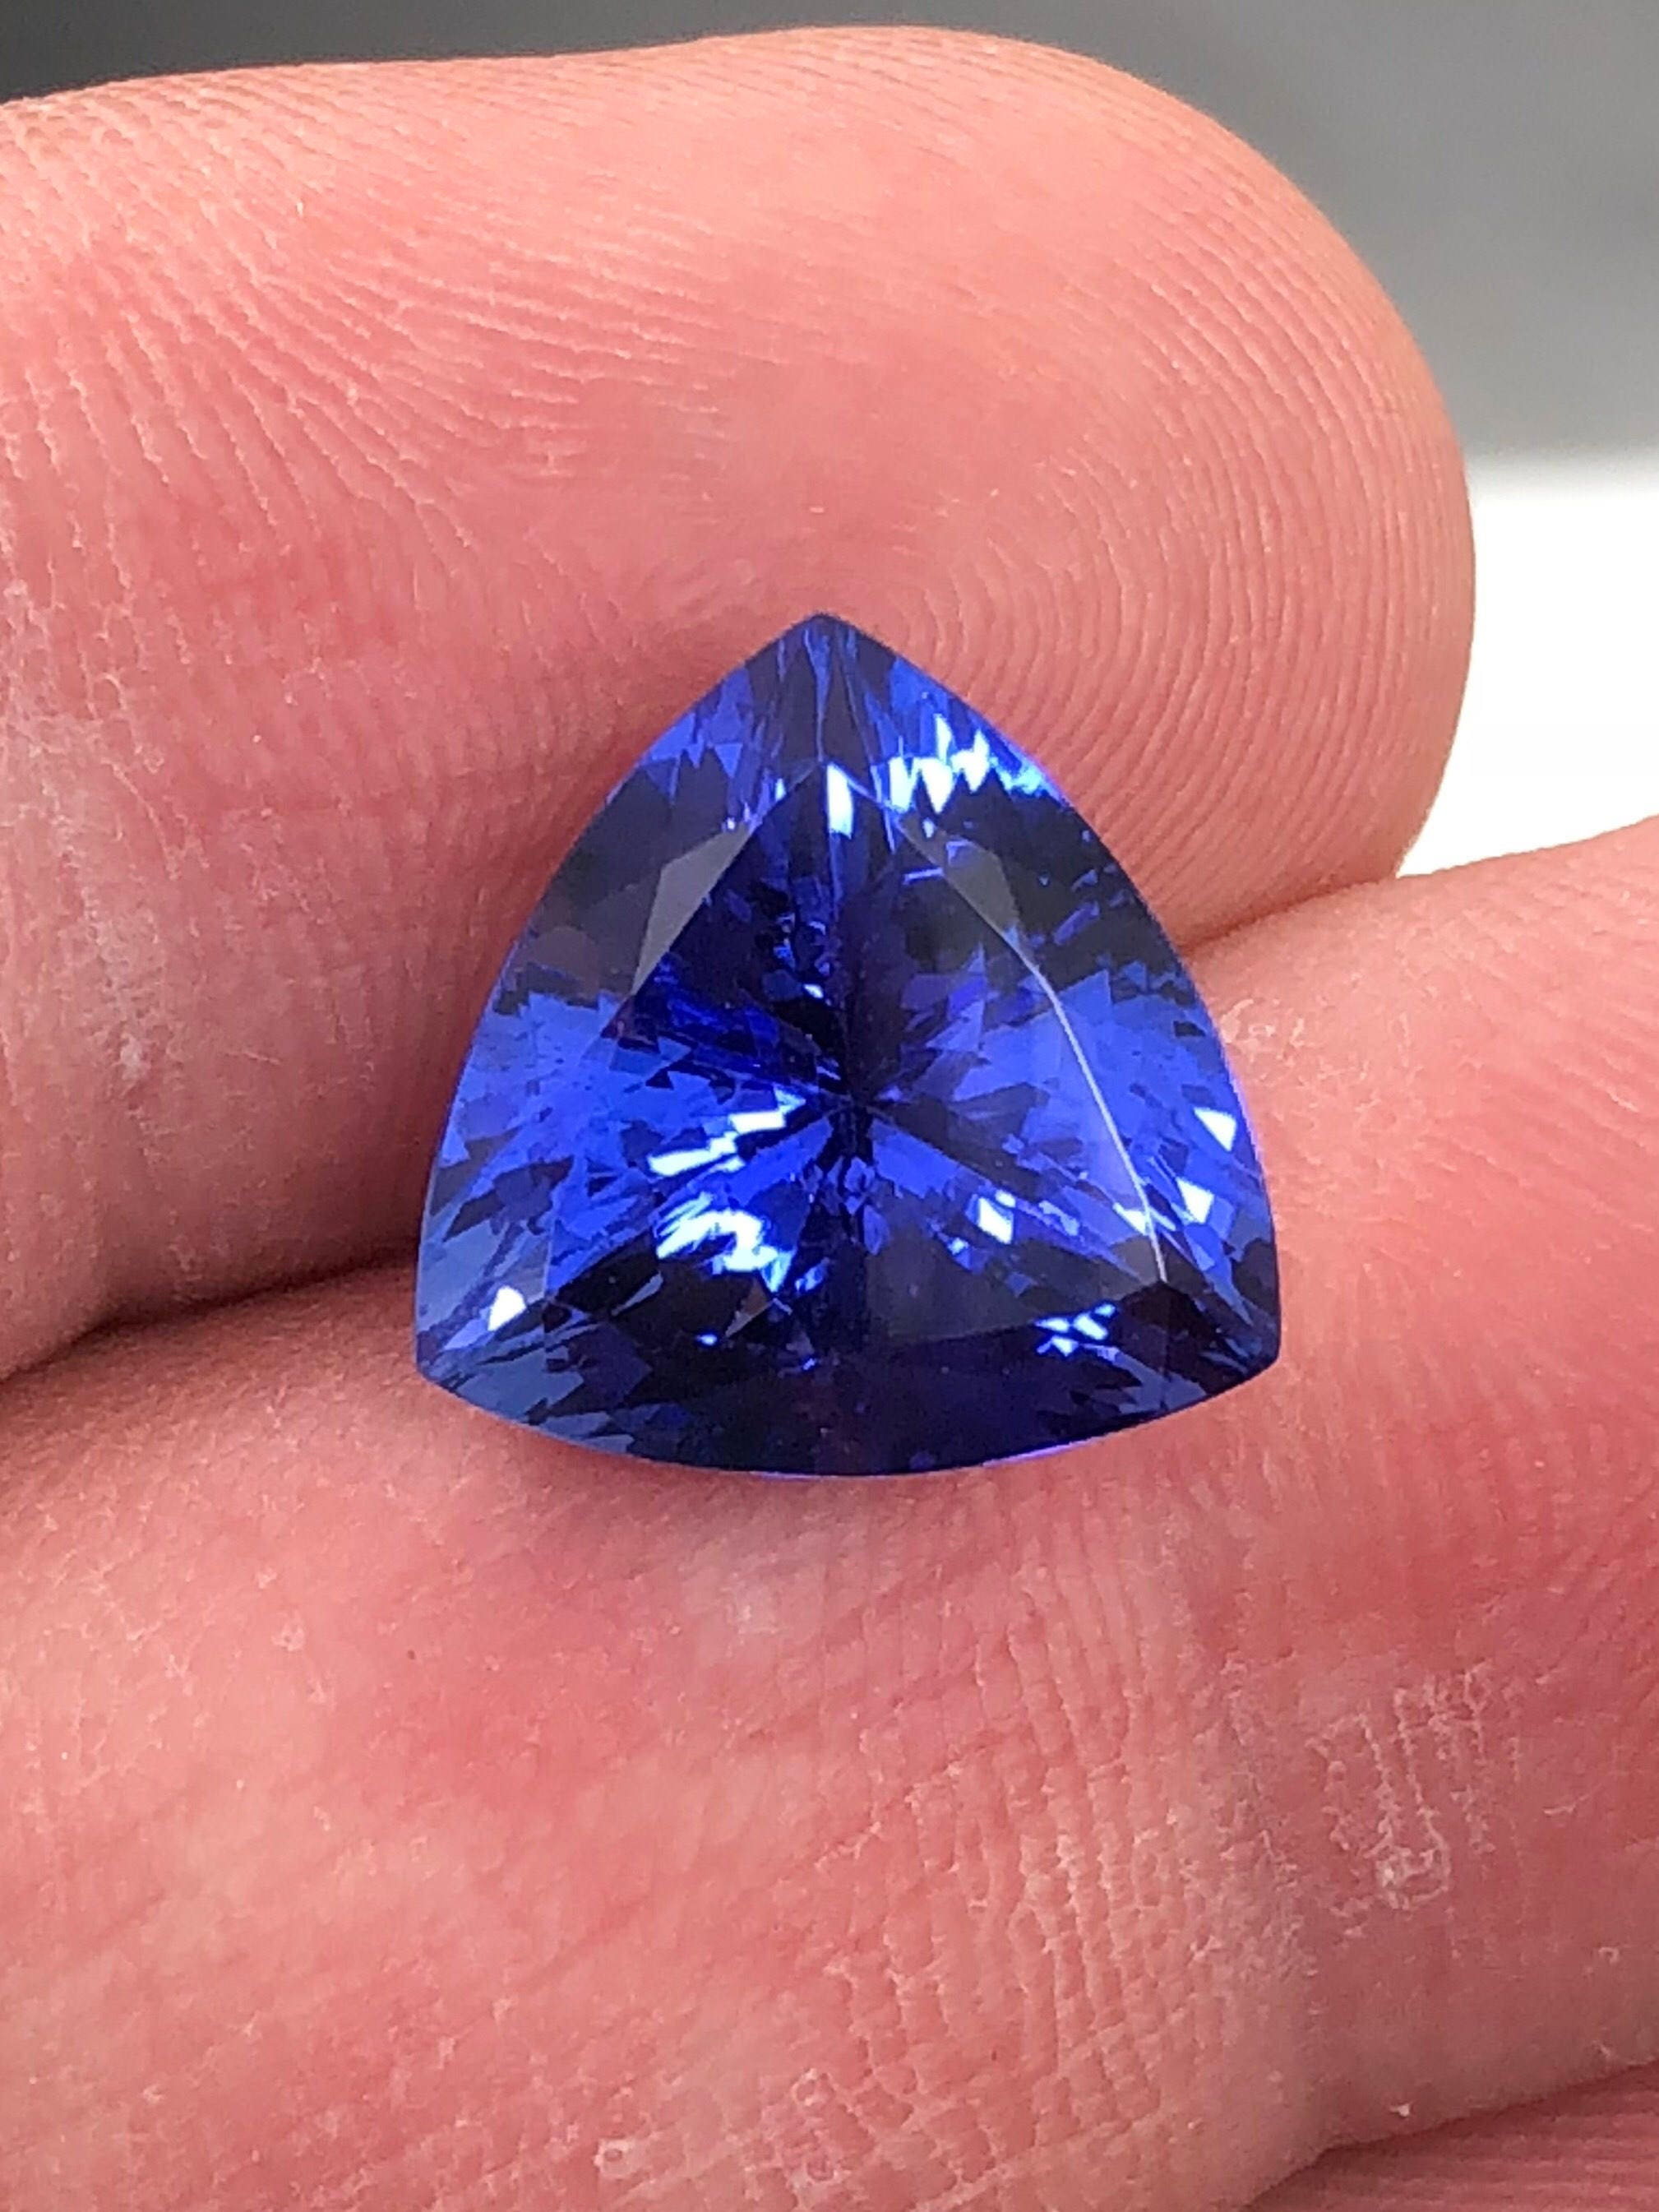 prices flawless at gems articles blue sapphire ajs